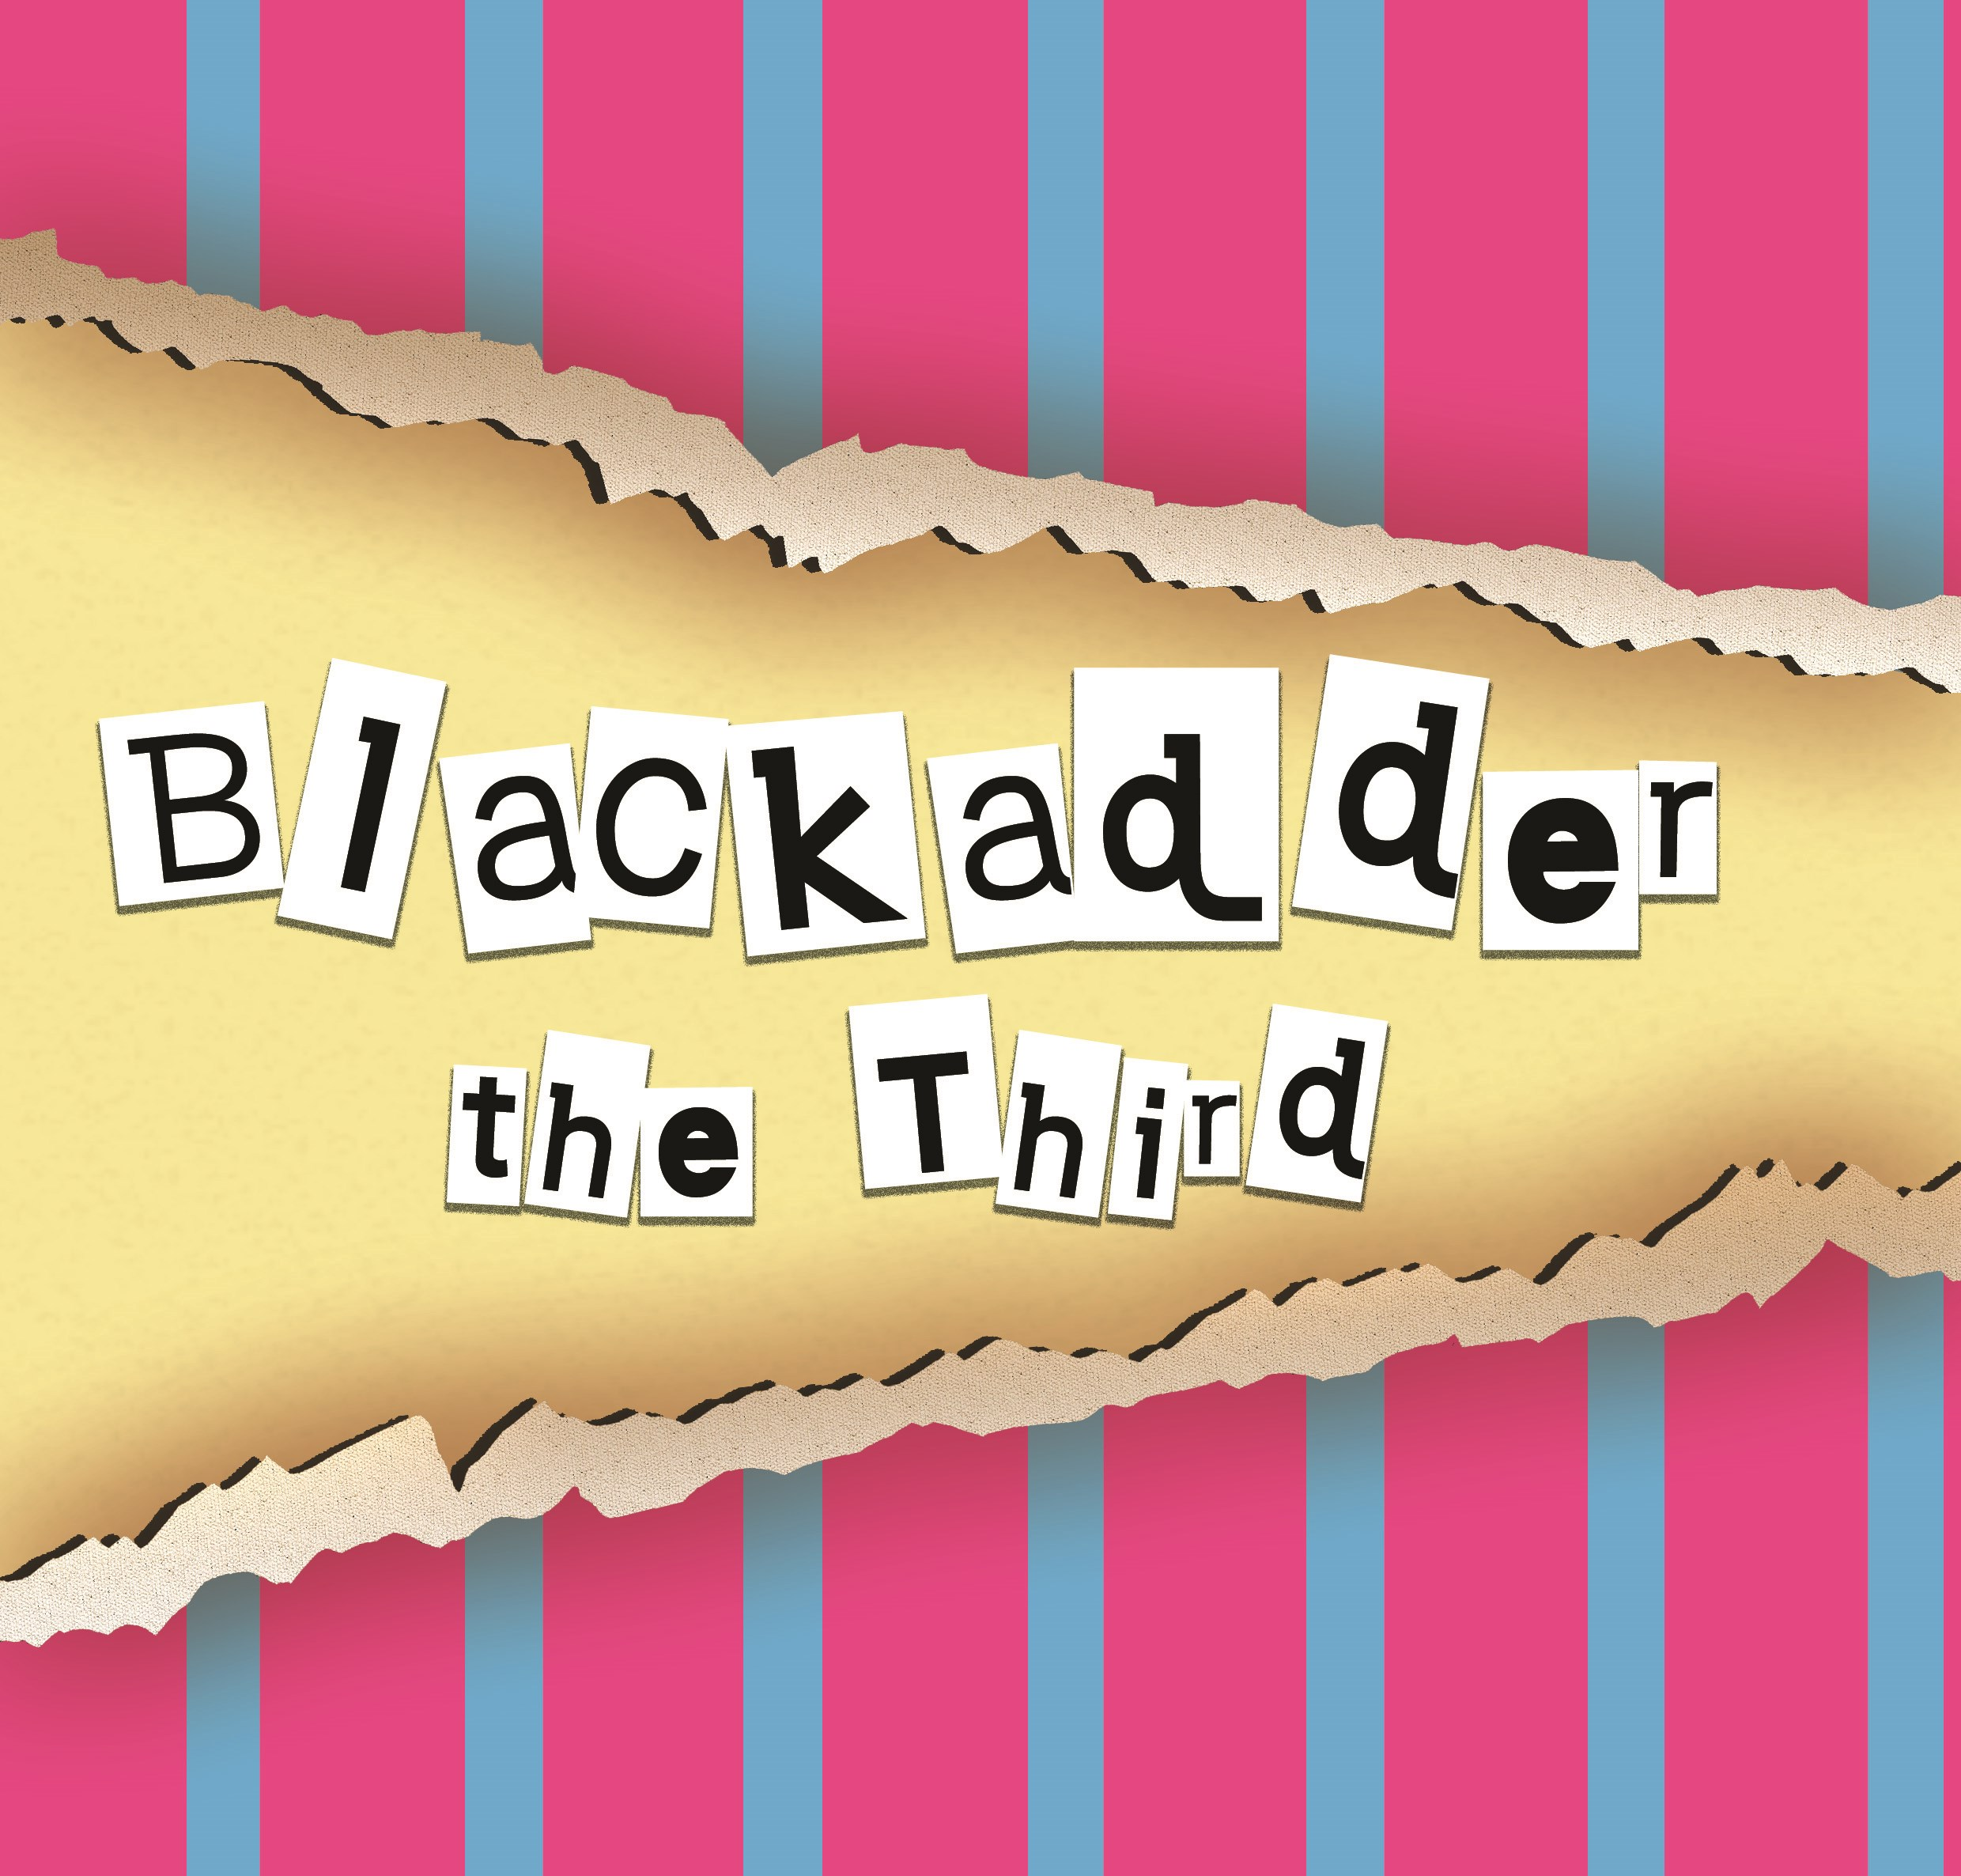 Blackadder the Third - Grantham Dramatic Society